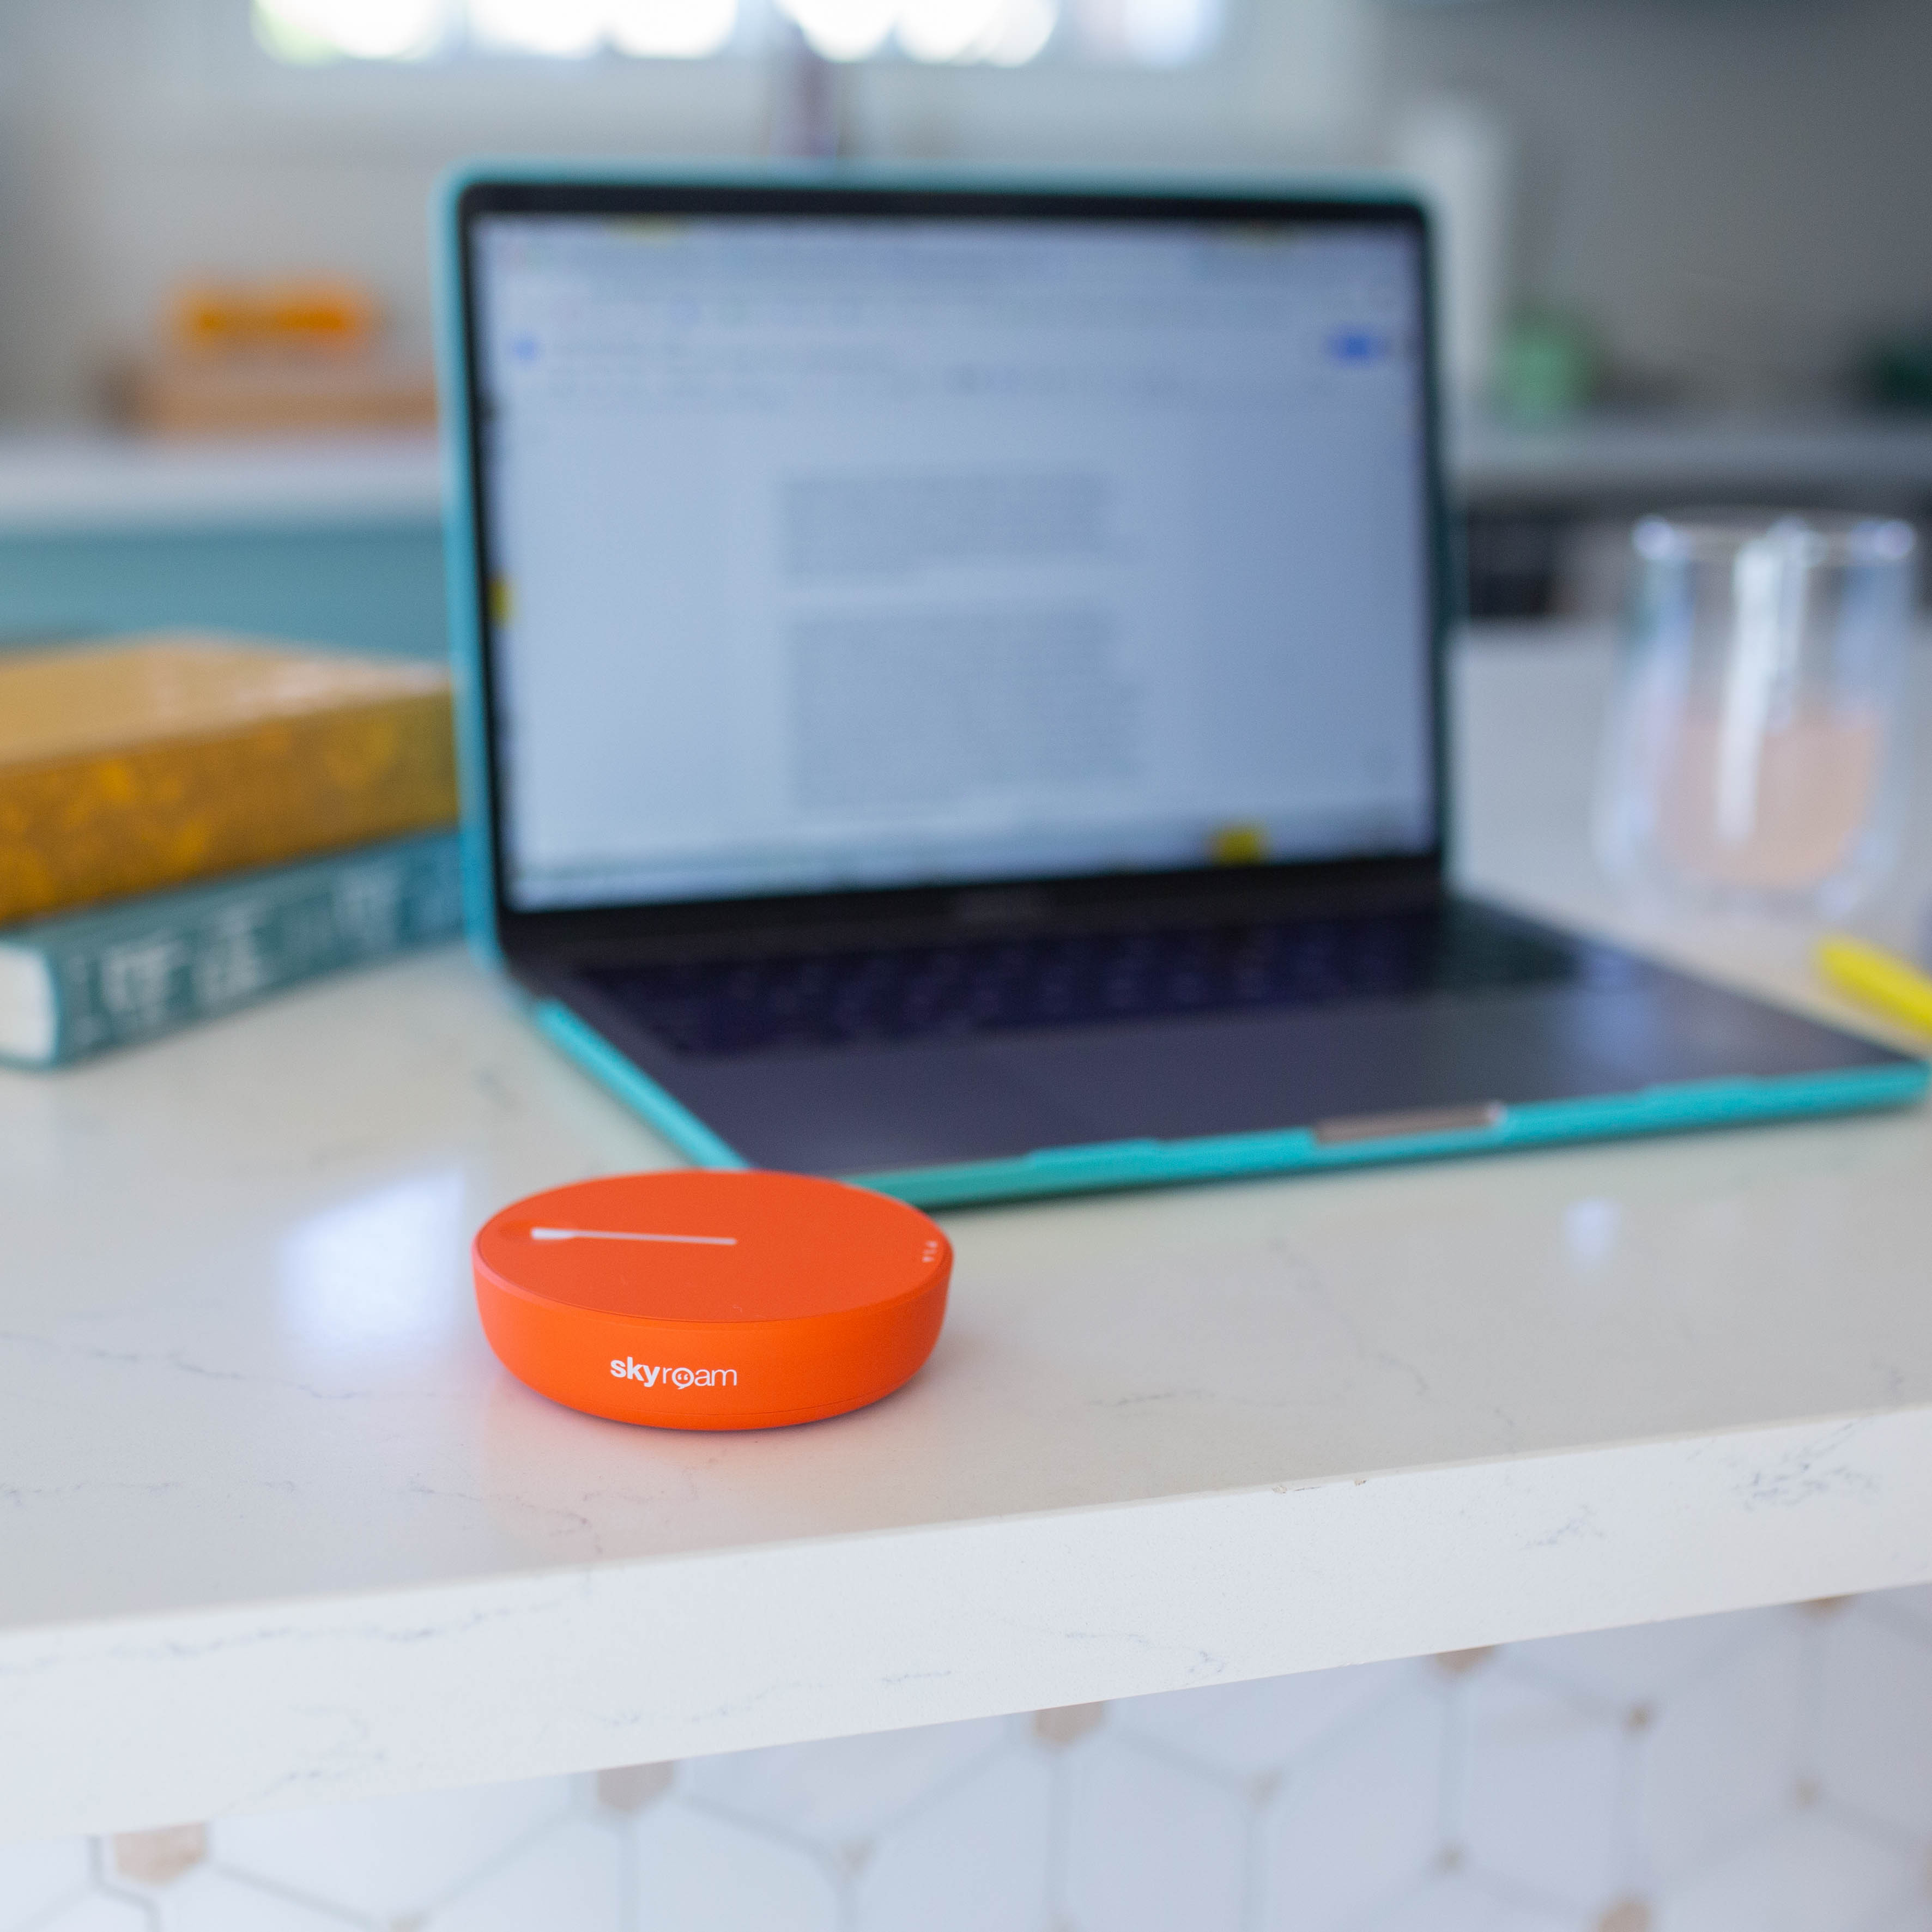 Increase productivity and dewire your home office with personal WiFi that goes where you go.